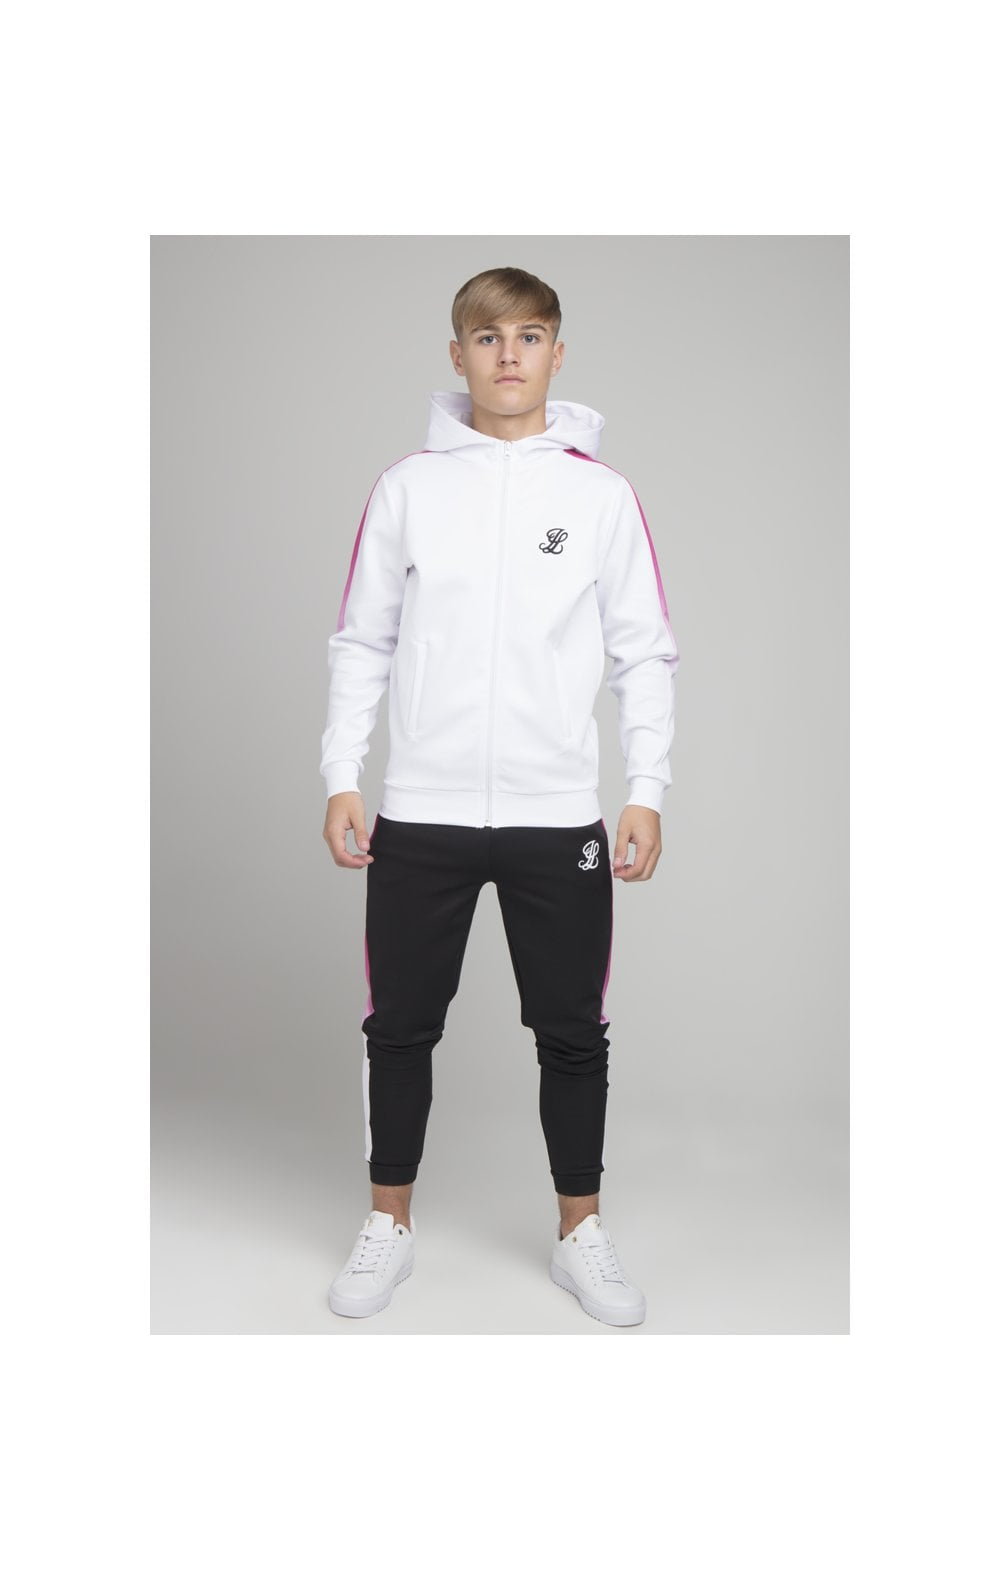 Illusive London Fade Panel Zip Through - White & Pink (3)